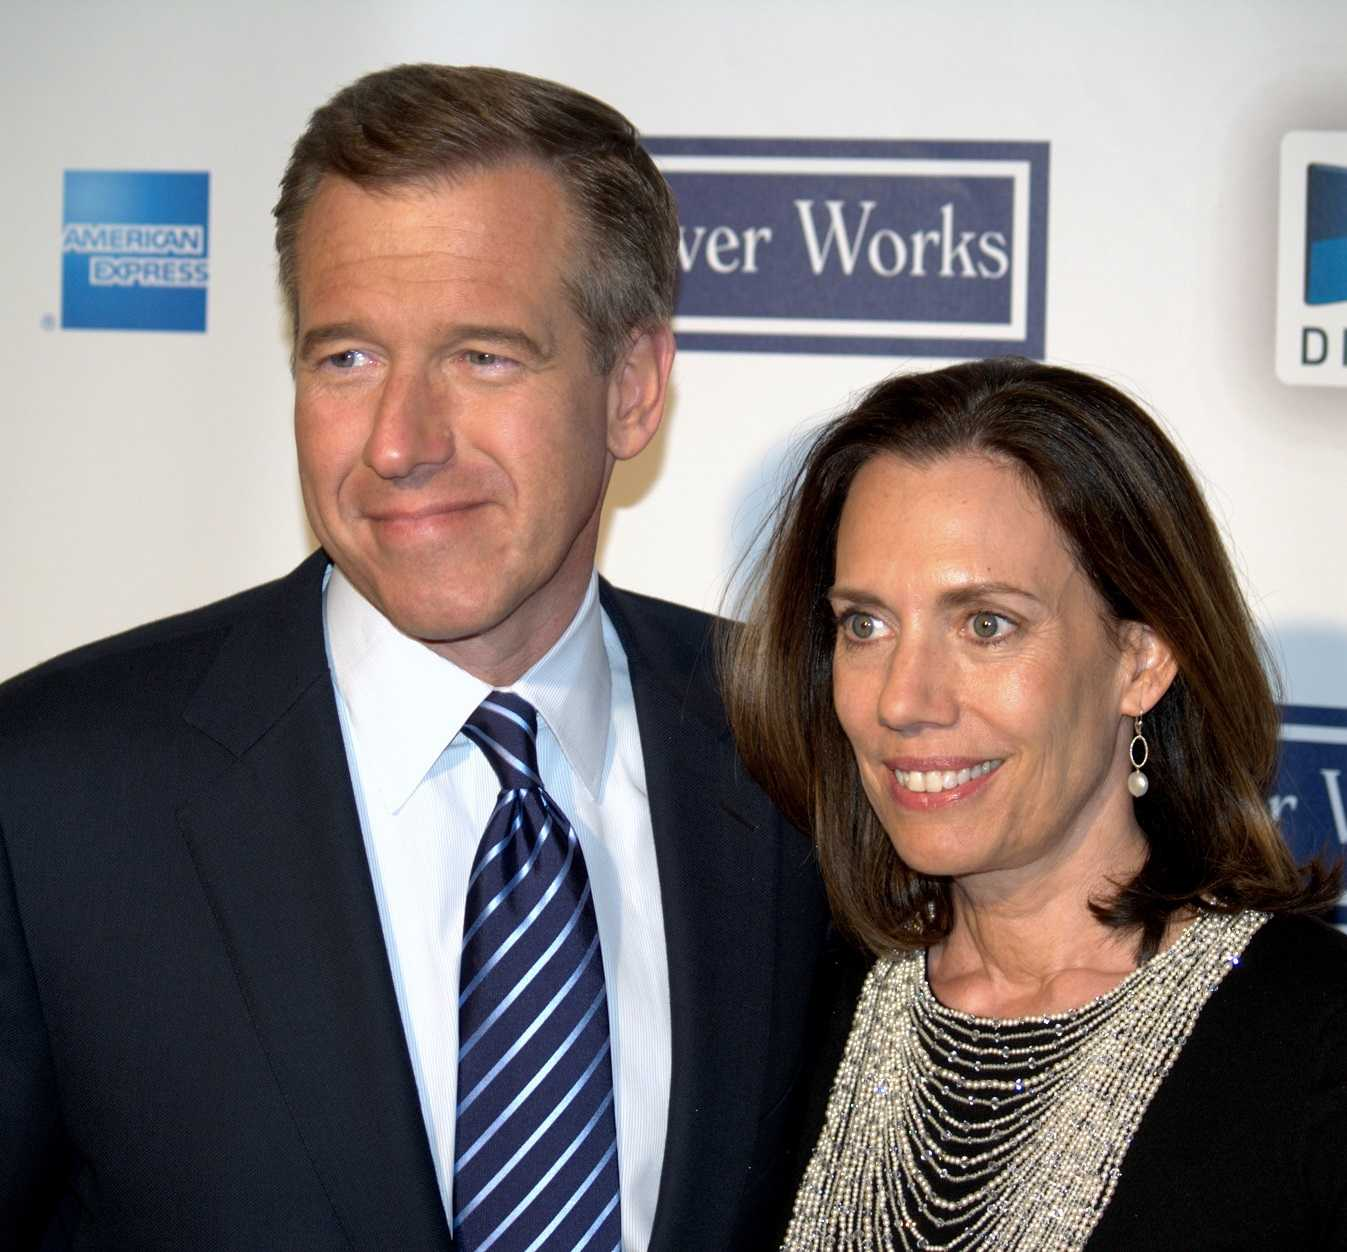 Brian Williams and his wife, Jane, in 2009. Mr. Williams faces intense criticism for statements about his experiences in Iraq in 2003.